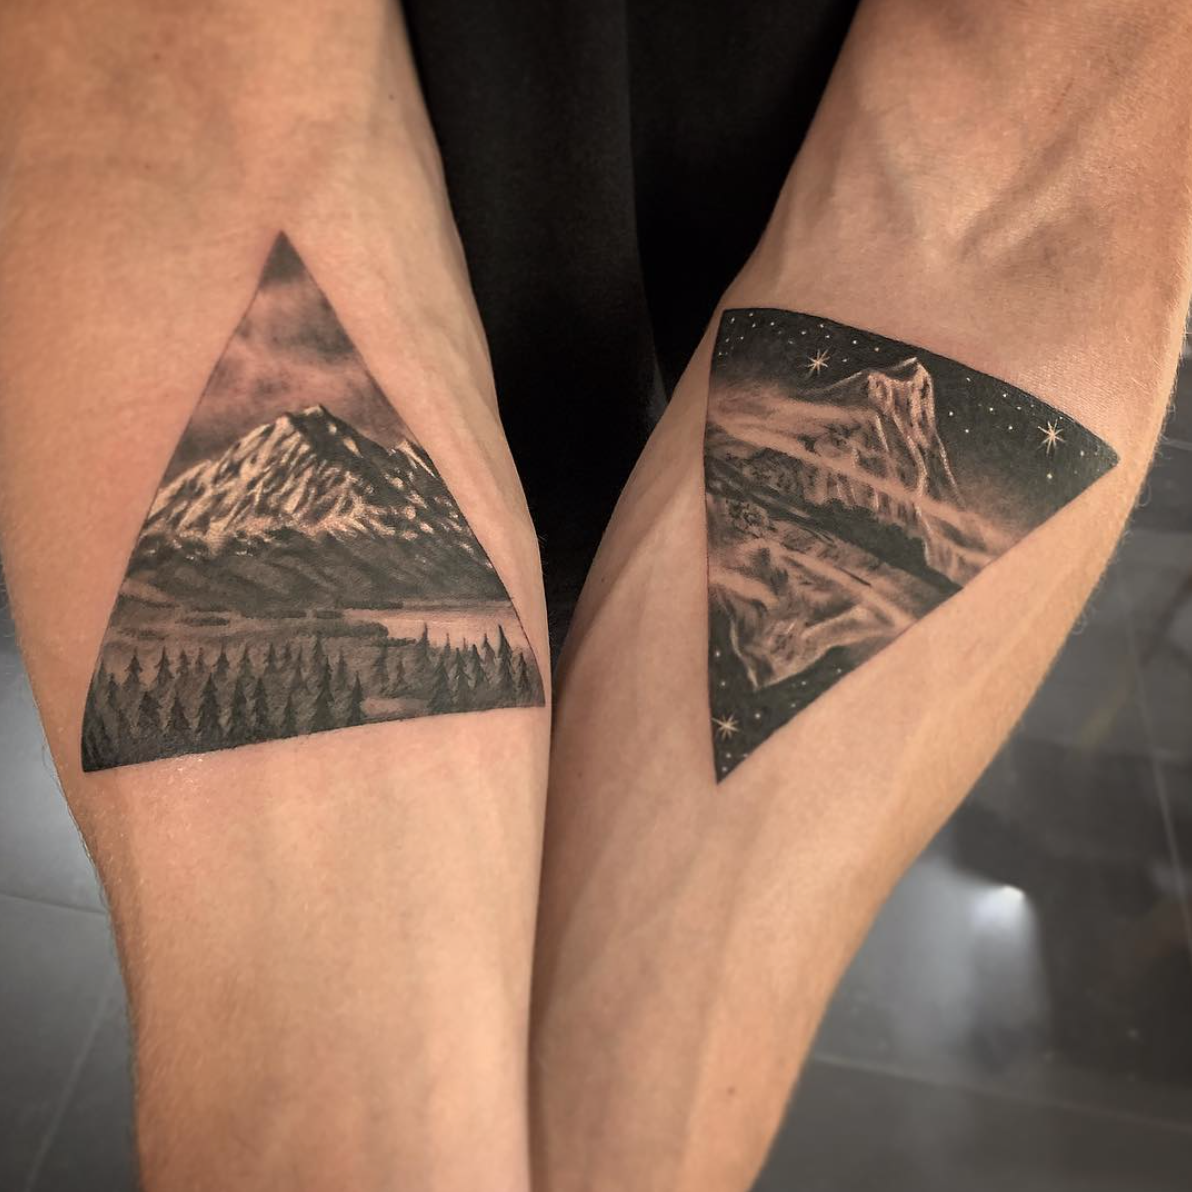 Bhens Of Black Sage Studio Follow Blacksagestudio For All Your Tattoo And Tattoo Removal Needs Tattoo Tattoos Life Tattoos Denver Tattoo Artists